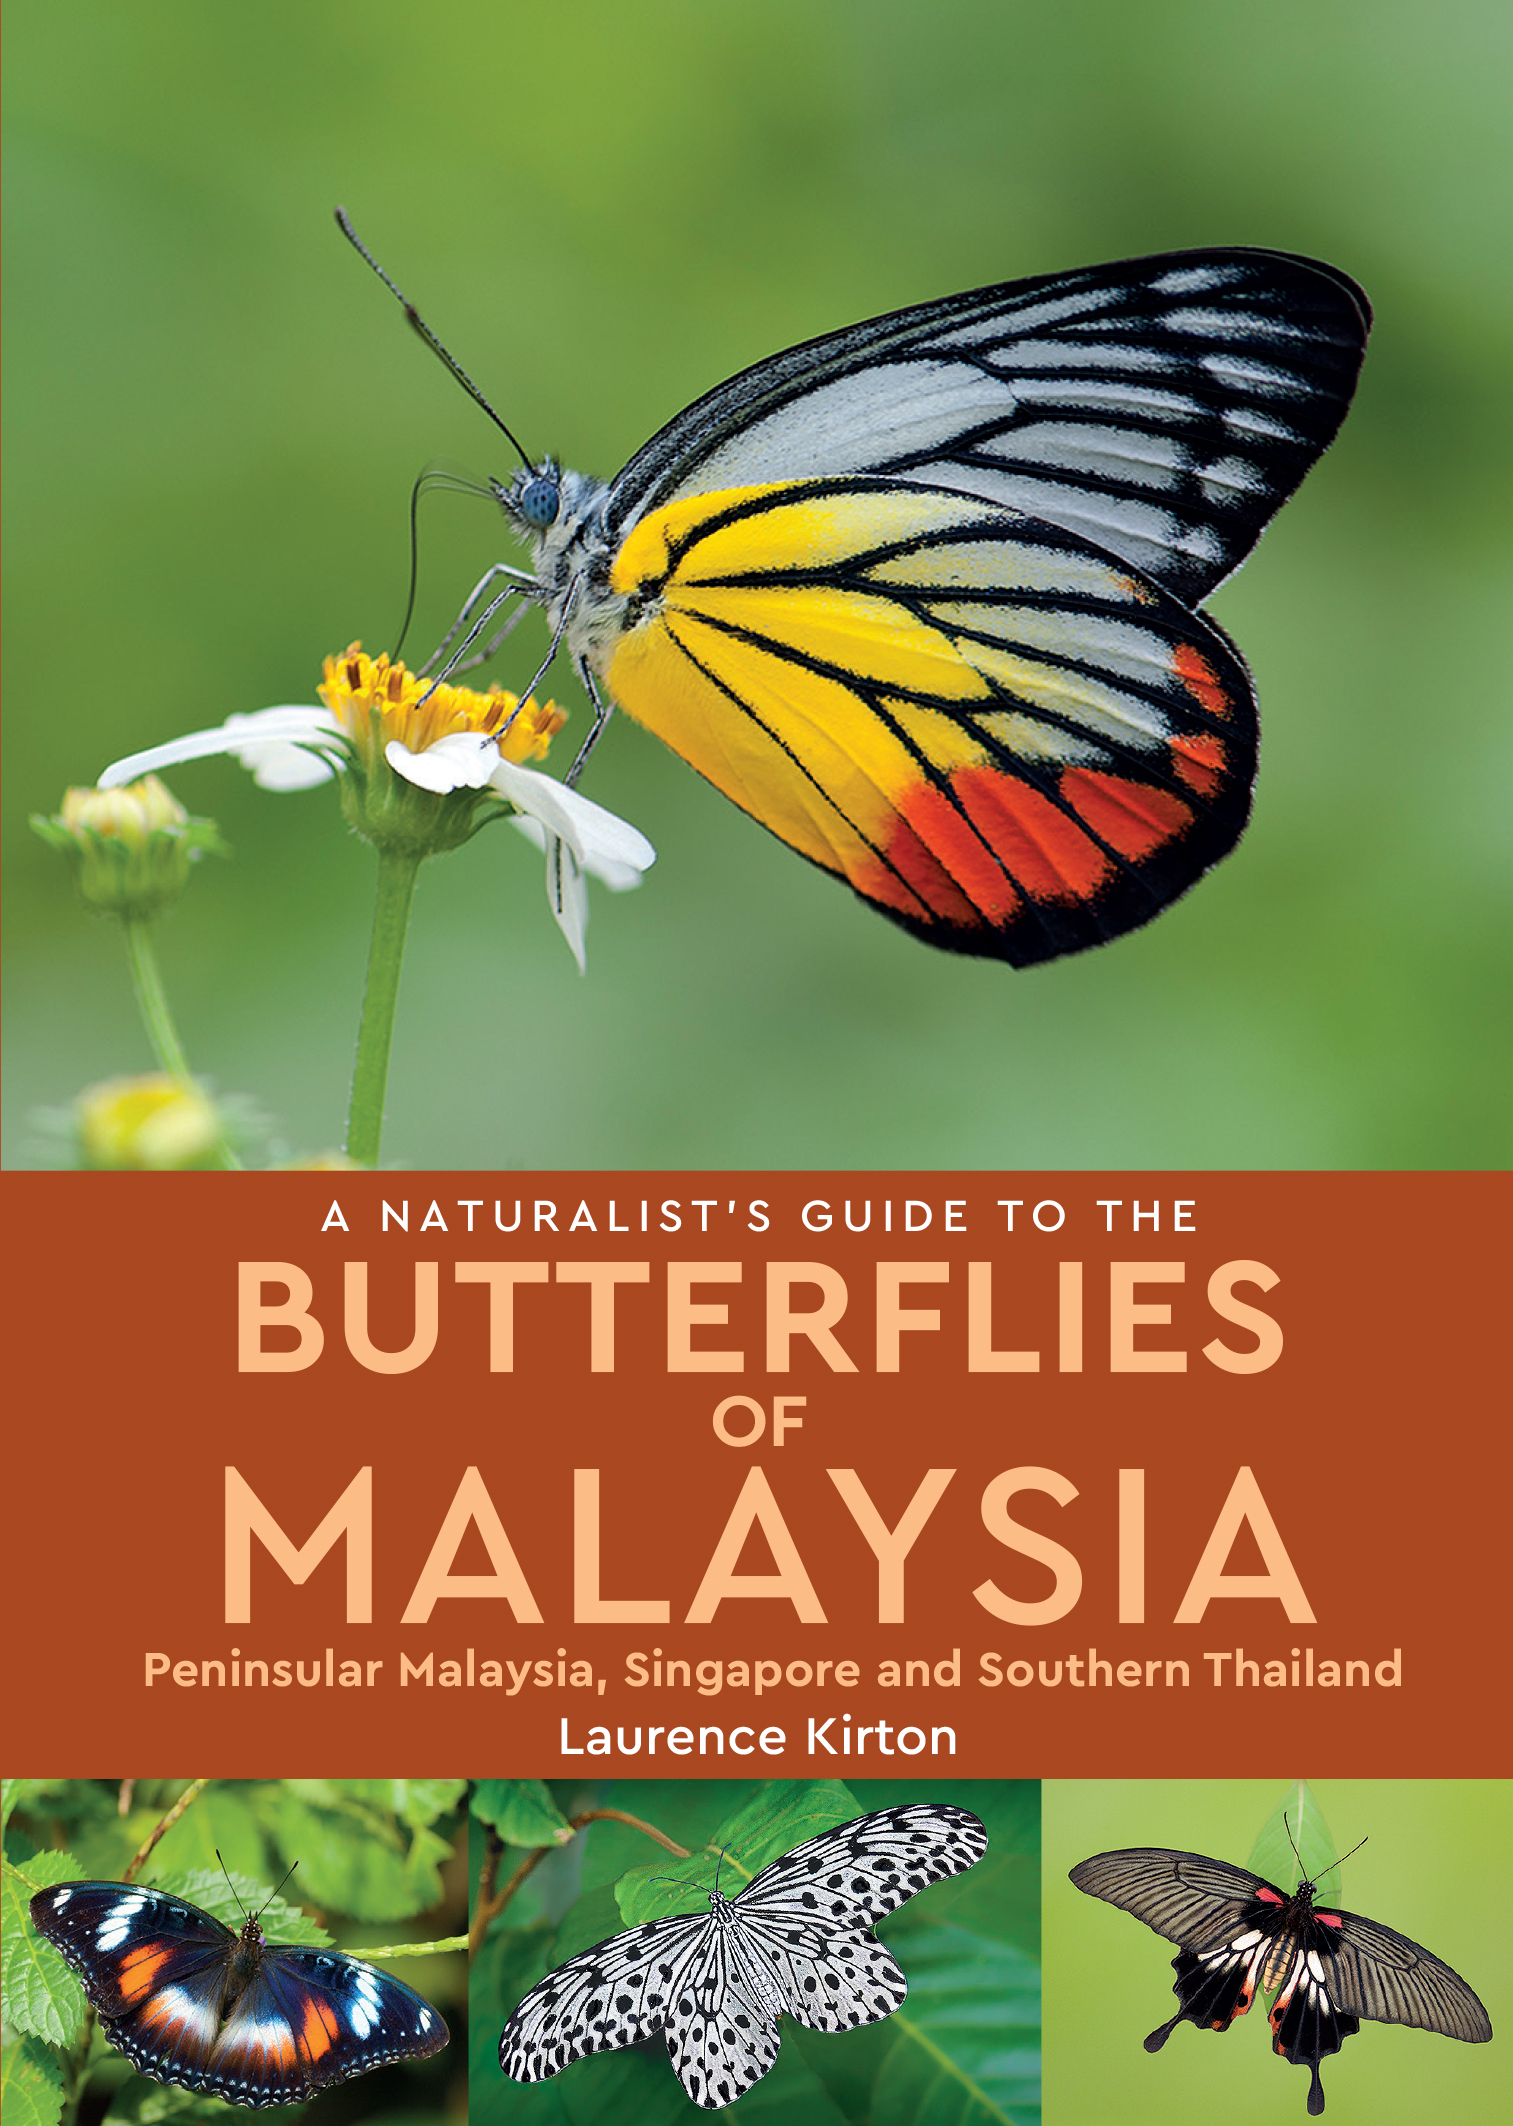 A Naturalist's Guide to the Butterflies of Malaysia